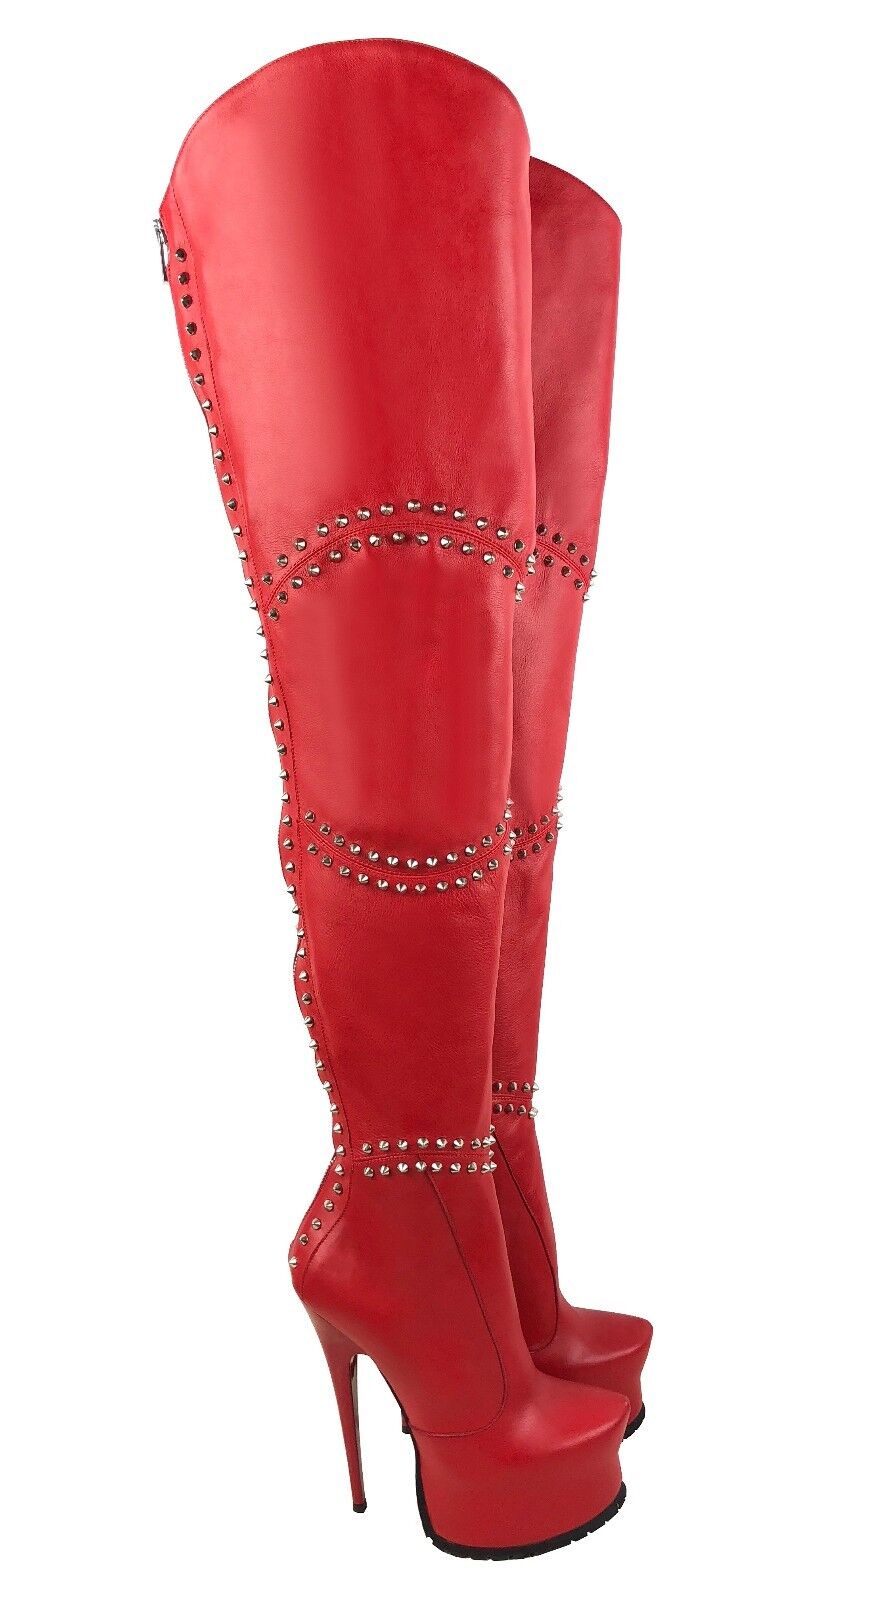 CQ COUTURE CUSTOM STUDS STIVALI ZIP PLATFORM BOOTS STIEFEL STIVALI STUDS LEATHER RED ROSSO 45 7a9dc9